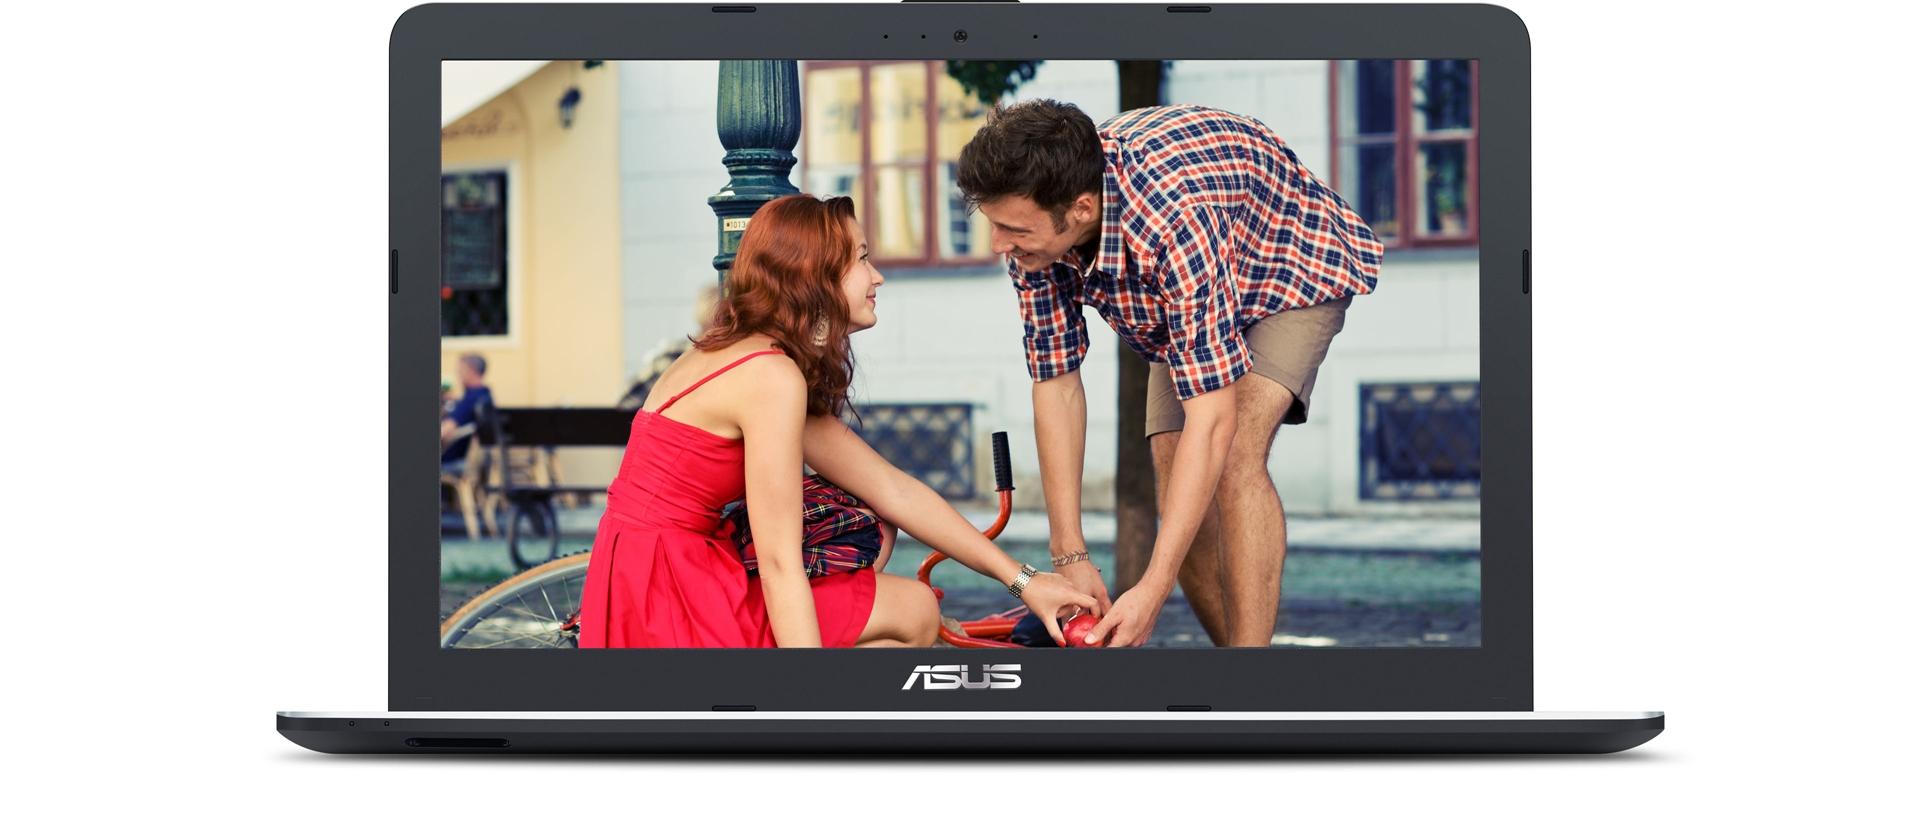 https://dlcdnimgs.asus.com/websites/global/products/L3apVGsqdD6xEDFp/img/desktop/s06.jpg